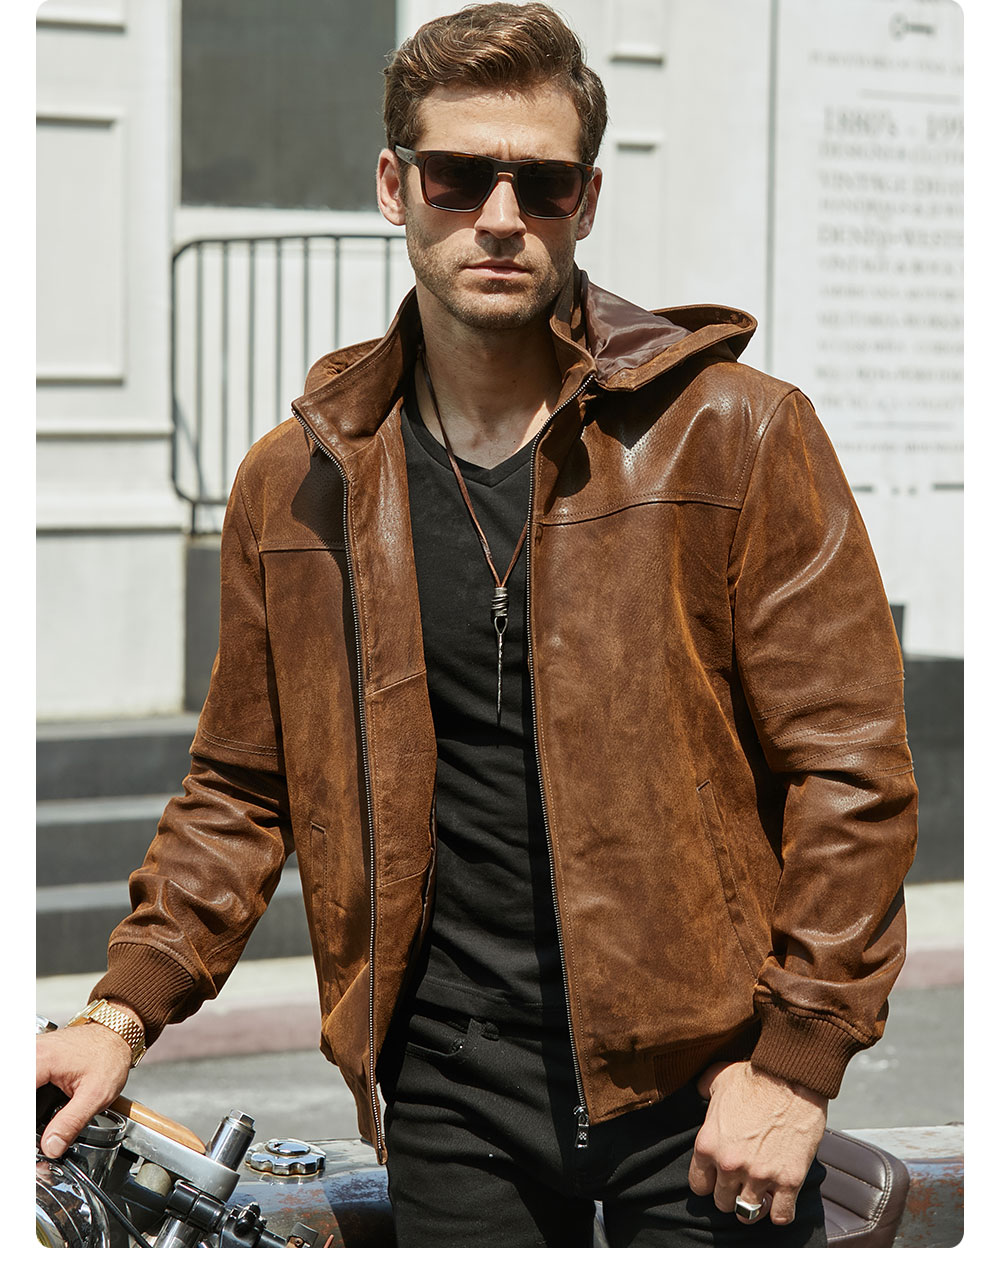 H74220d6941424012aea62c2d1f2994dbp New Men's Winter Jacket Made Of Genuine Pigskin Leather With A Hood, Pigskin Motorcycle Jacket, Natural Leather Jacket